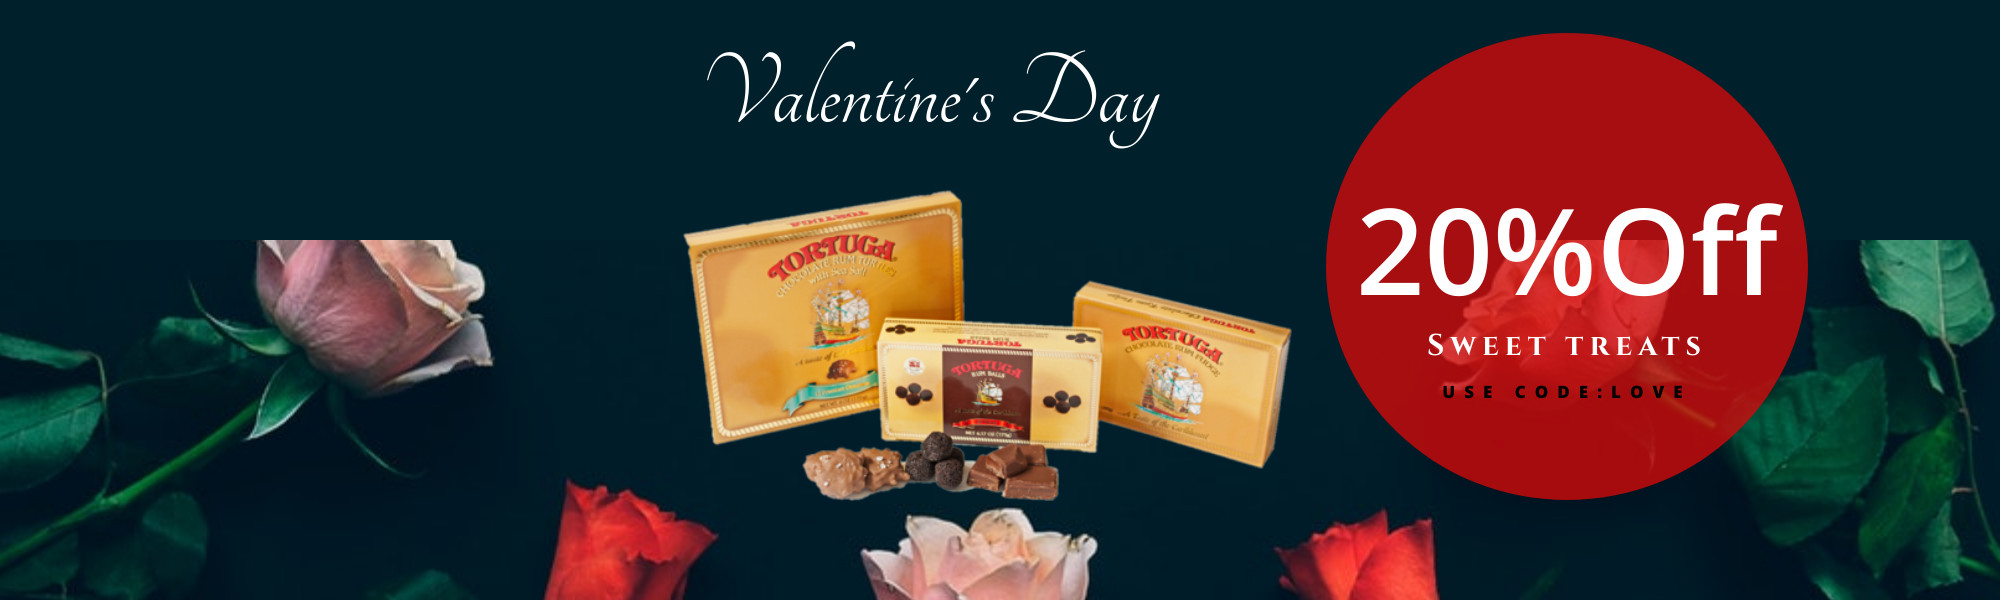 valentines-day-chocolate-treats-20-off-category-page-image.jpg